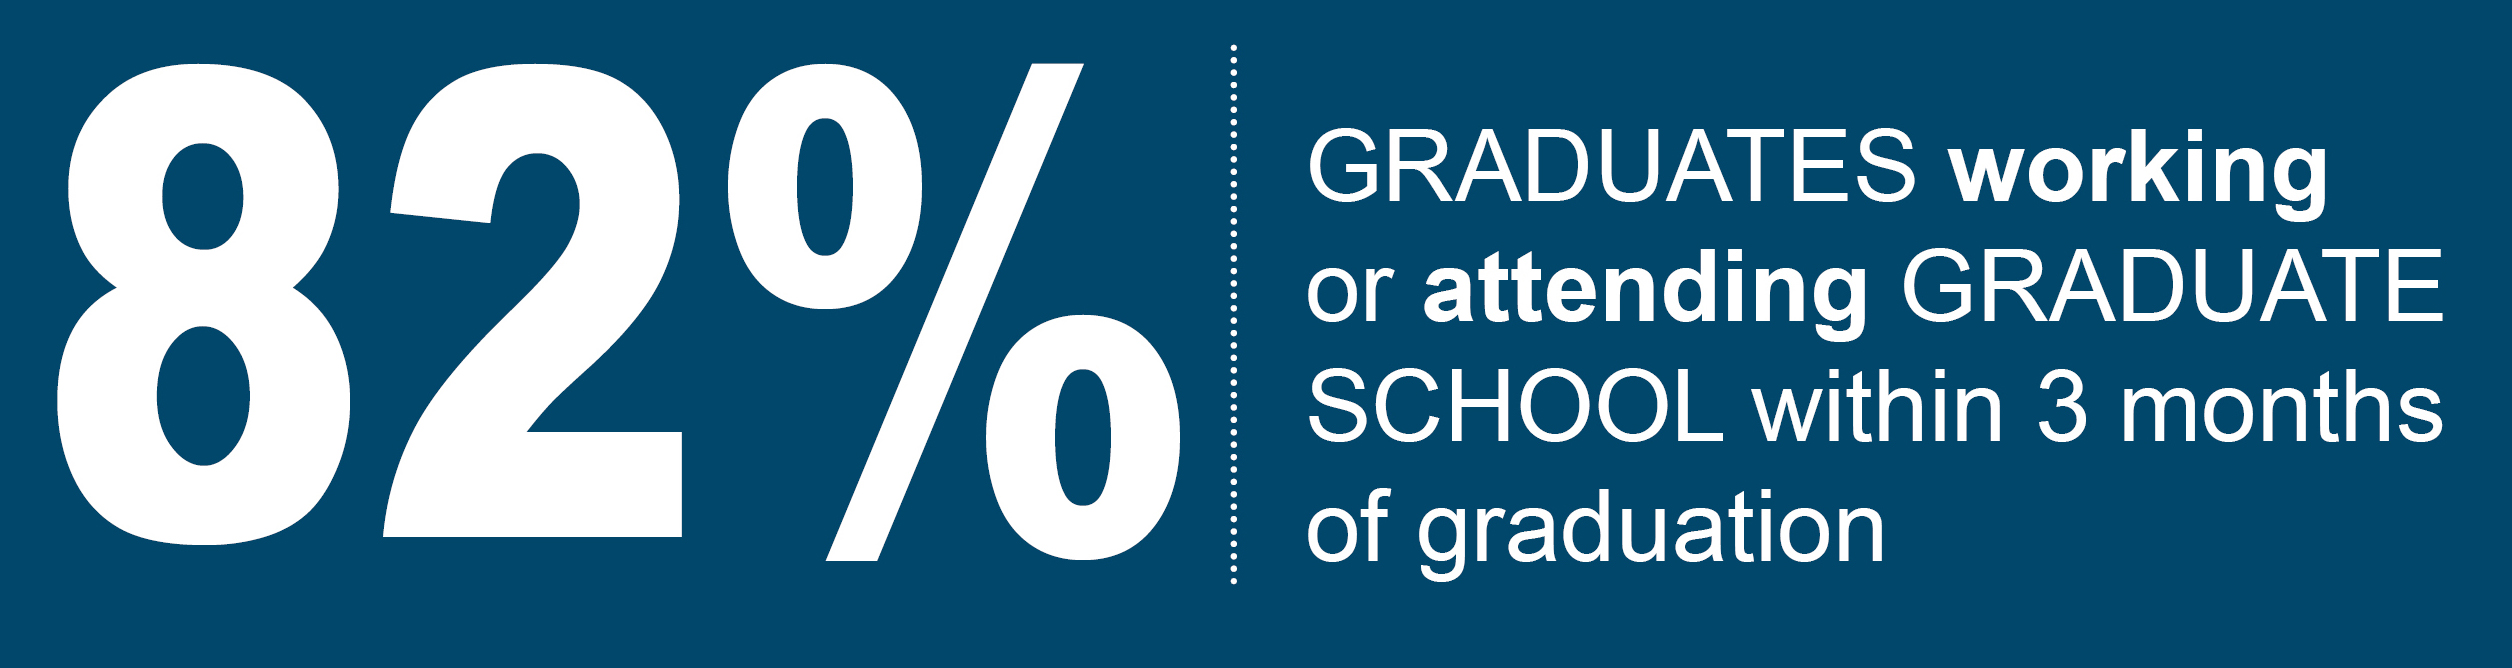 82%: Graduates working or attending graduate school within 3 months of graduation